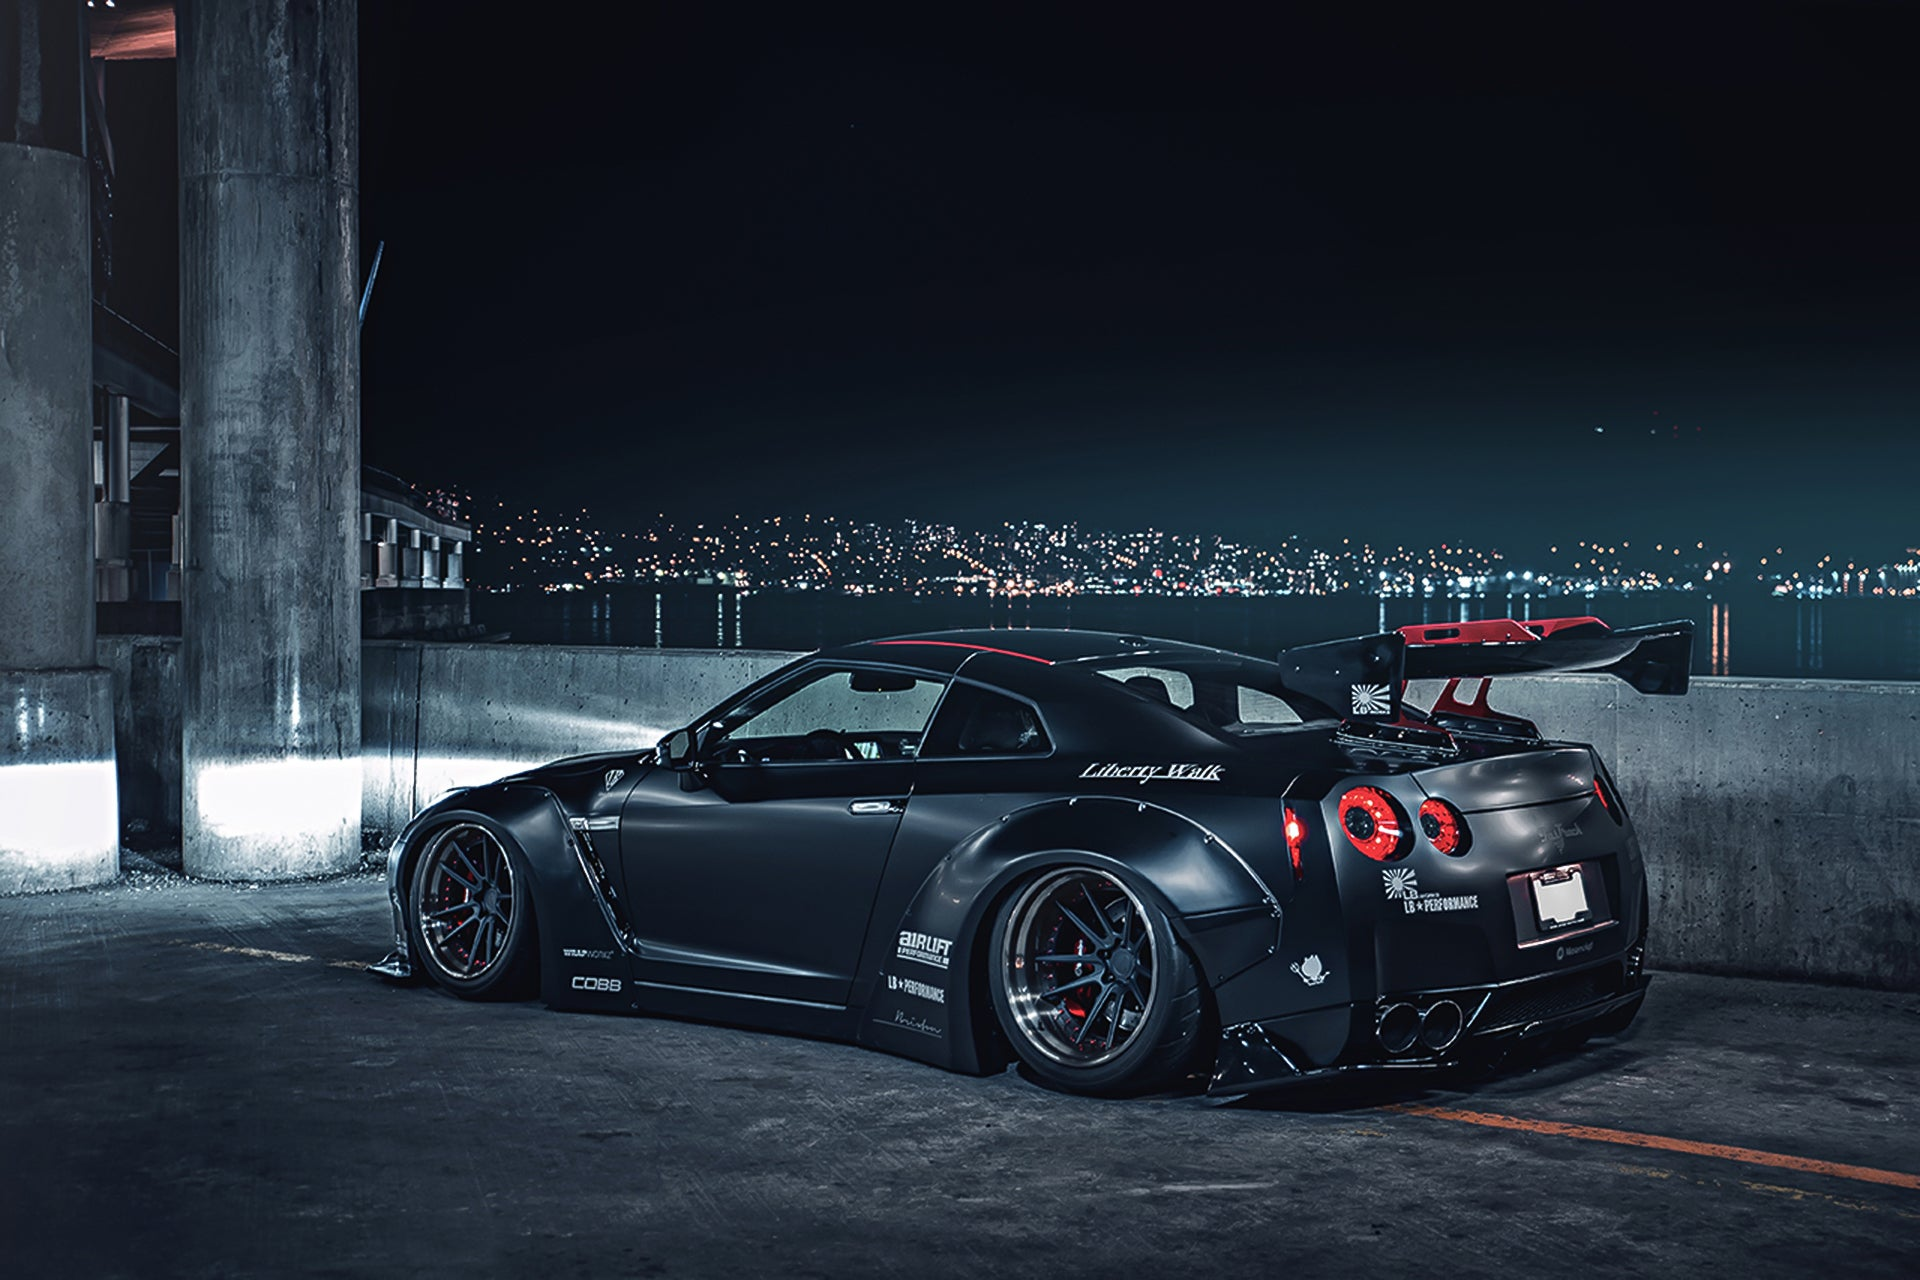 Nissan Skyline GT-R R35 Liberty Walk